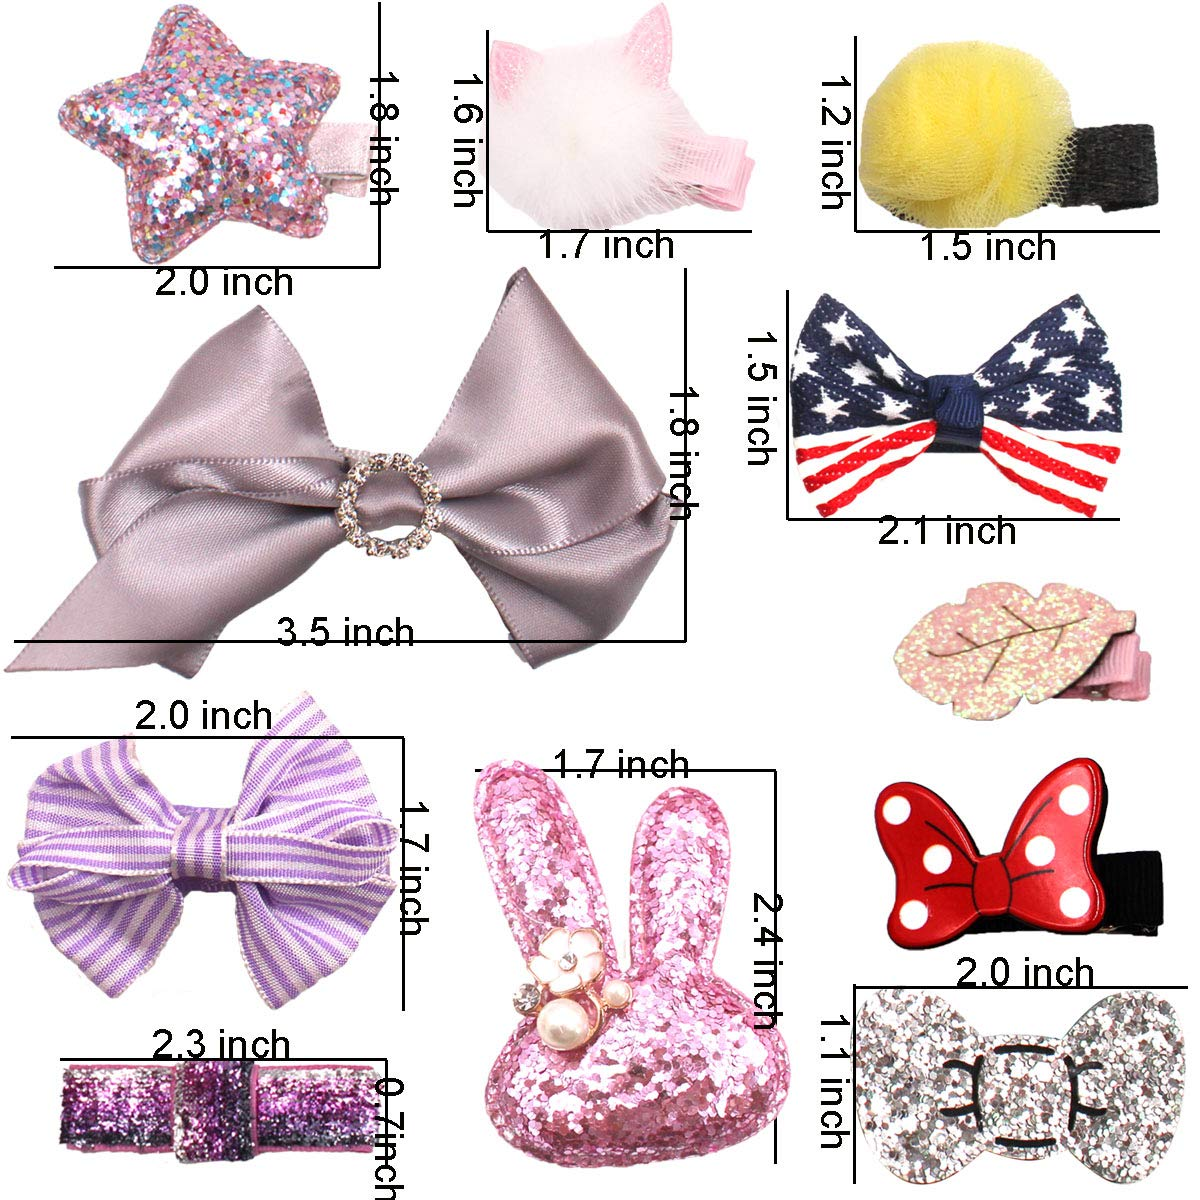 6 Inch Girl Baby Lovely Boutique Hair Accessory Knot Hair Bow Clip Alligato I7L8